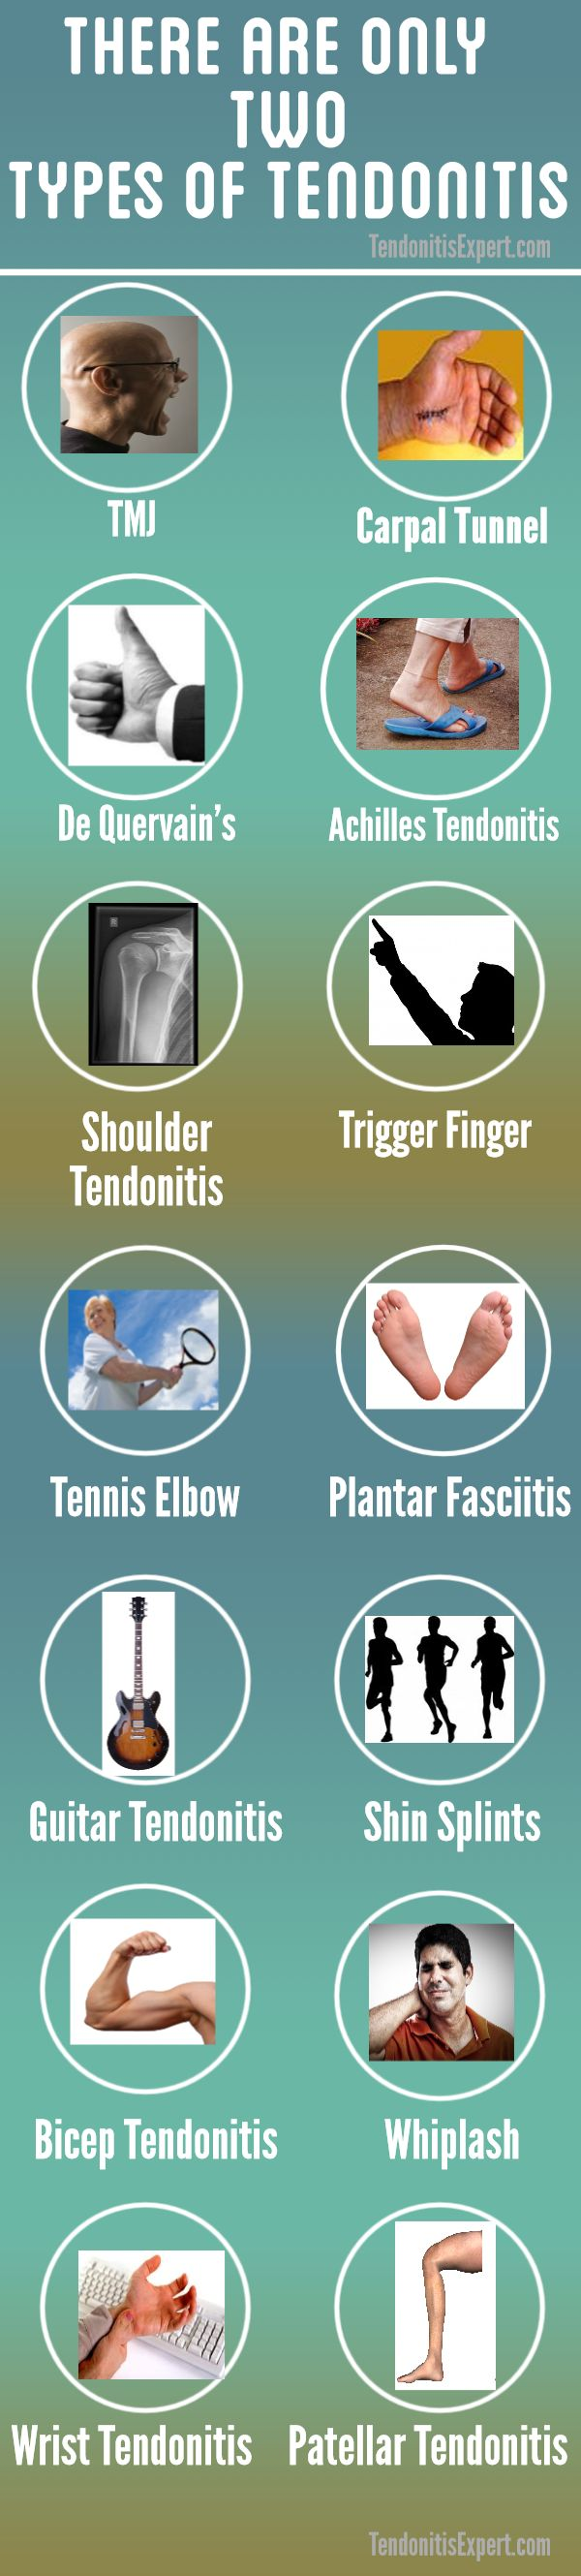 tendonitis types infographic